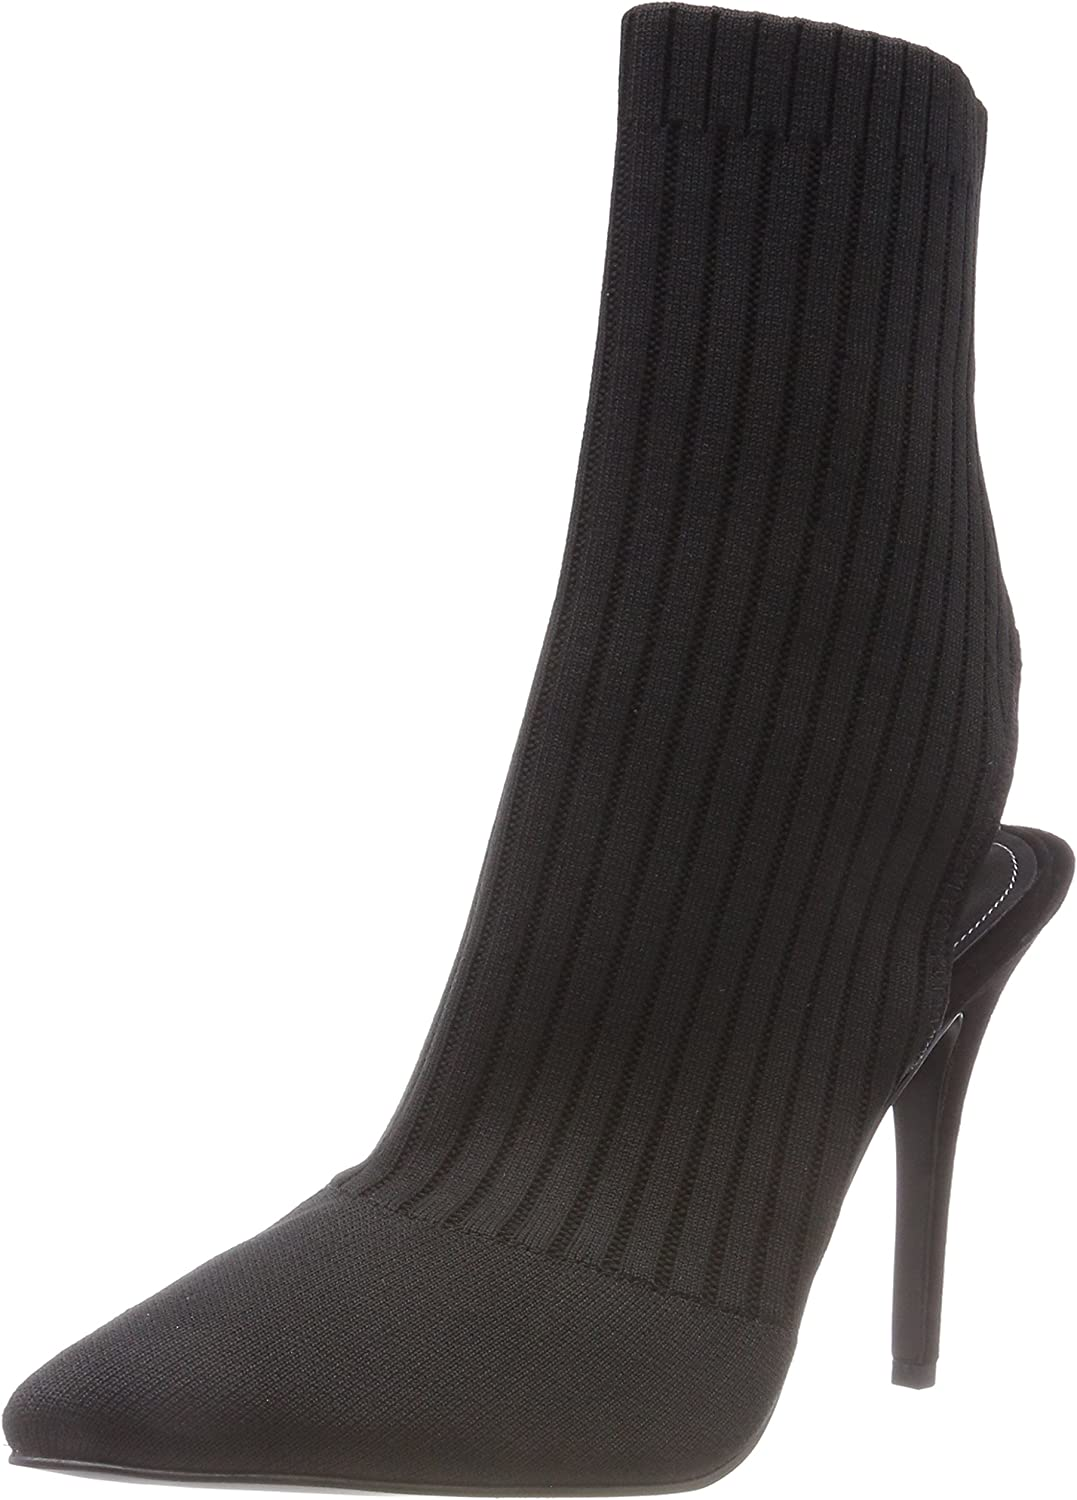 Kendall and Kylie shoes Women's Adrian Knitted Sock Boots Black UK 6